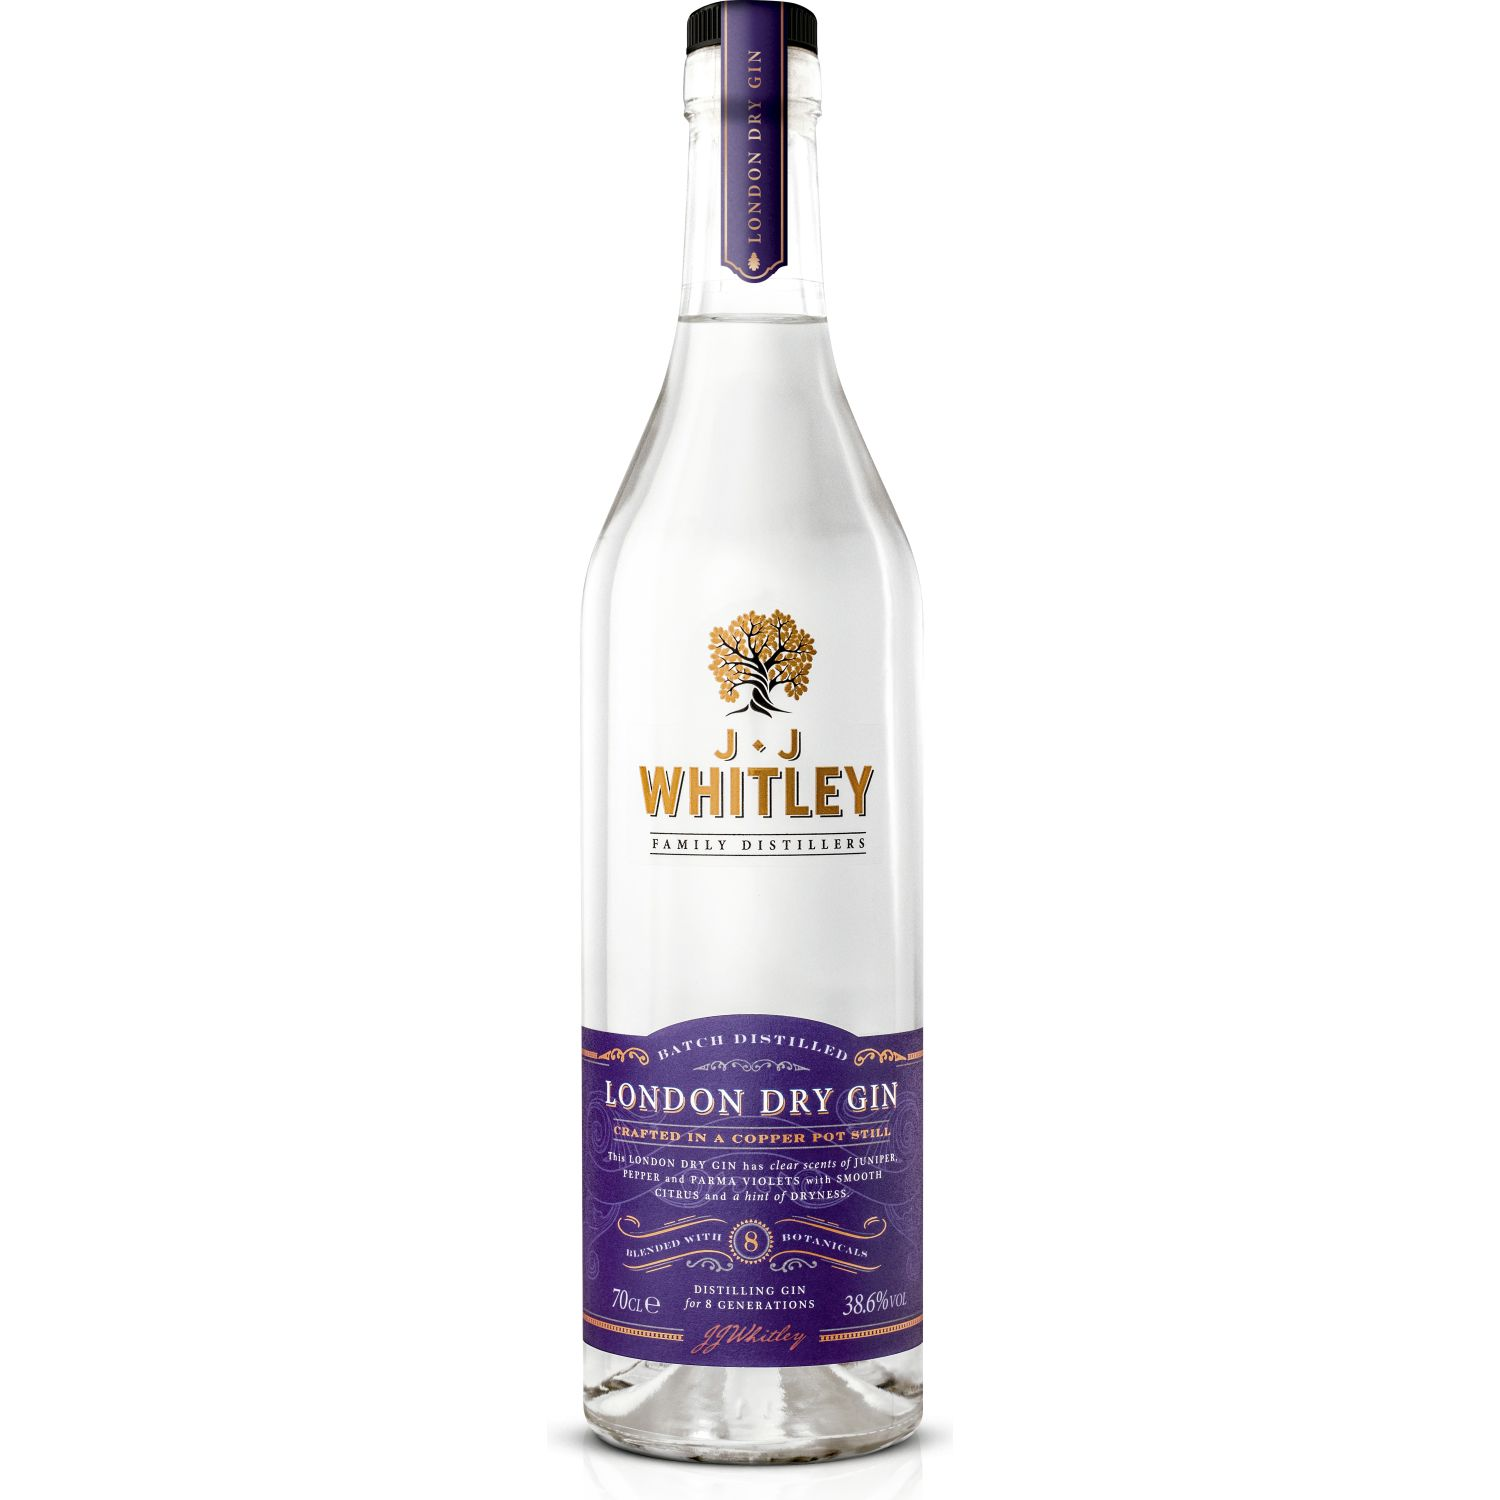 JJ Whitley JJ Whitley London Dry Gin 700ML SIN COLOR Gin